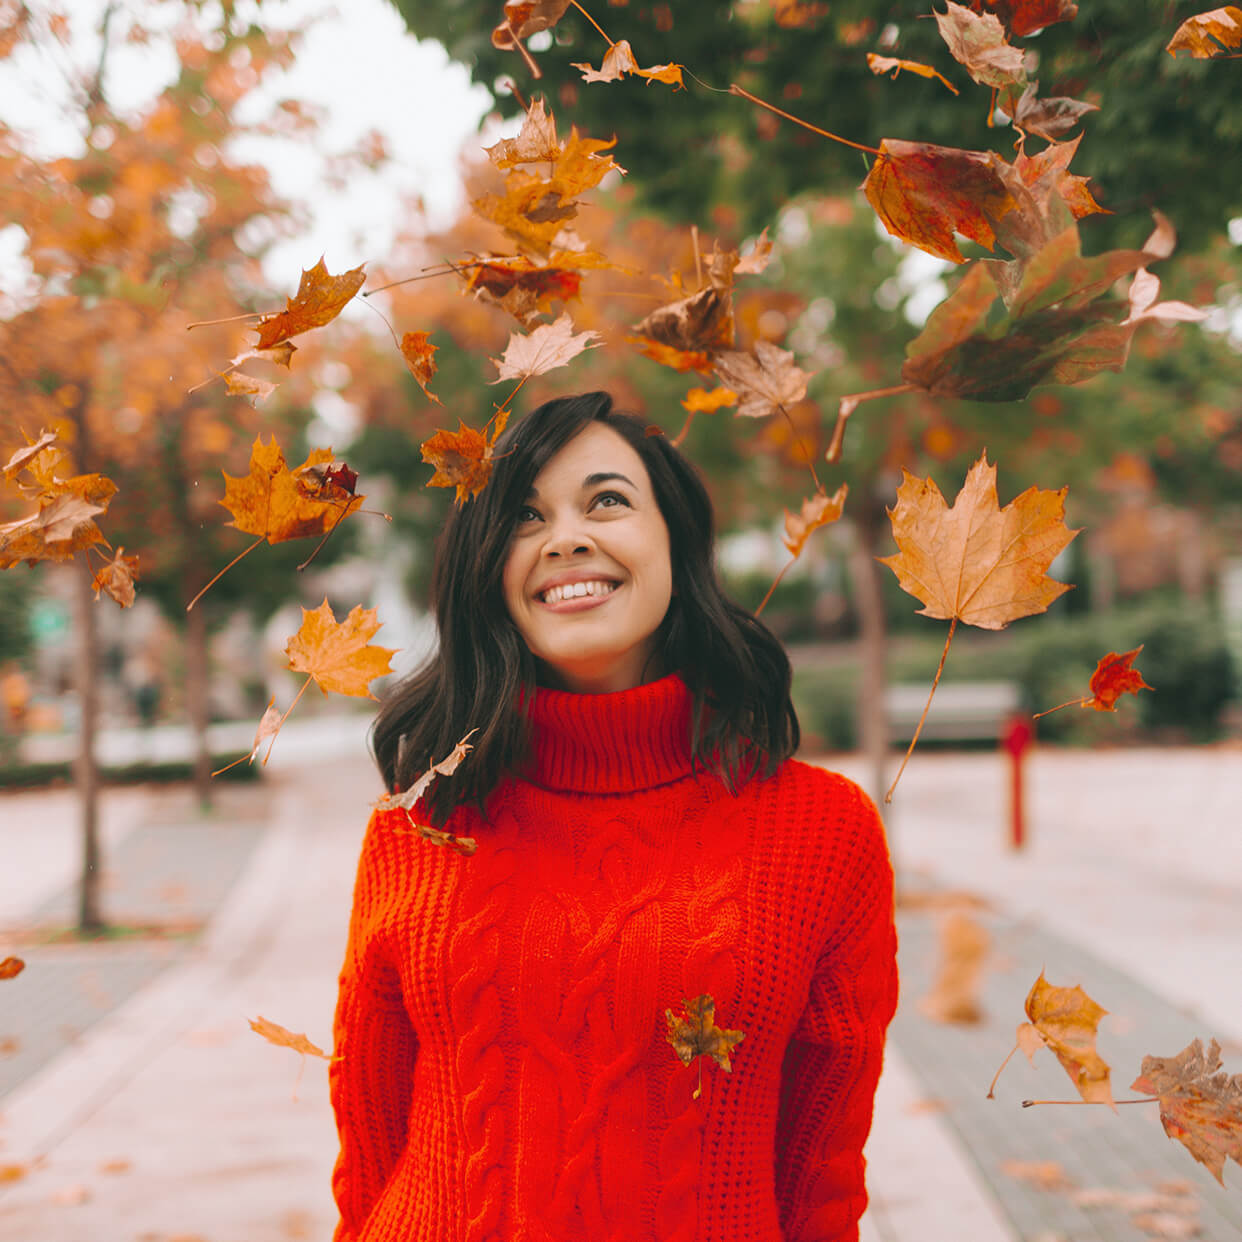 50 Best Fall Photoshoot Ideas To Try In Autumn 2020